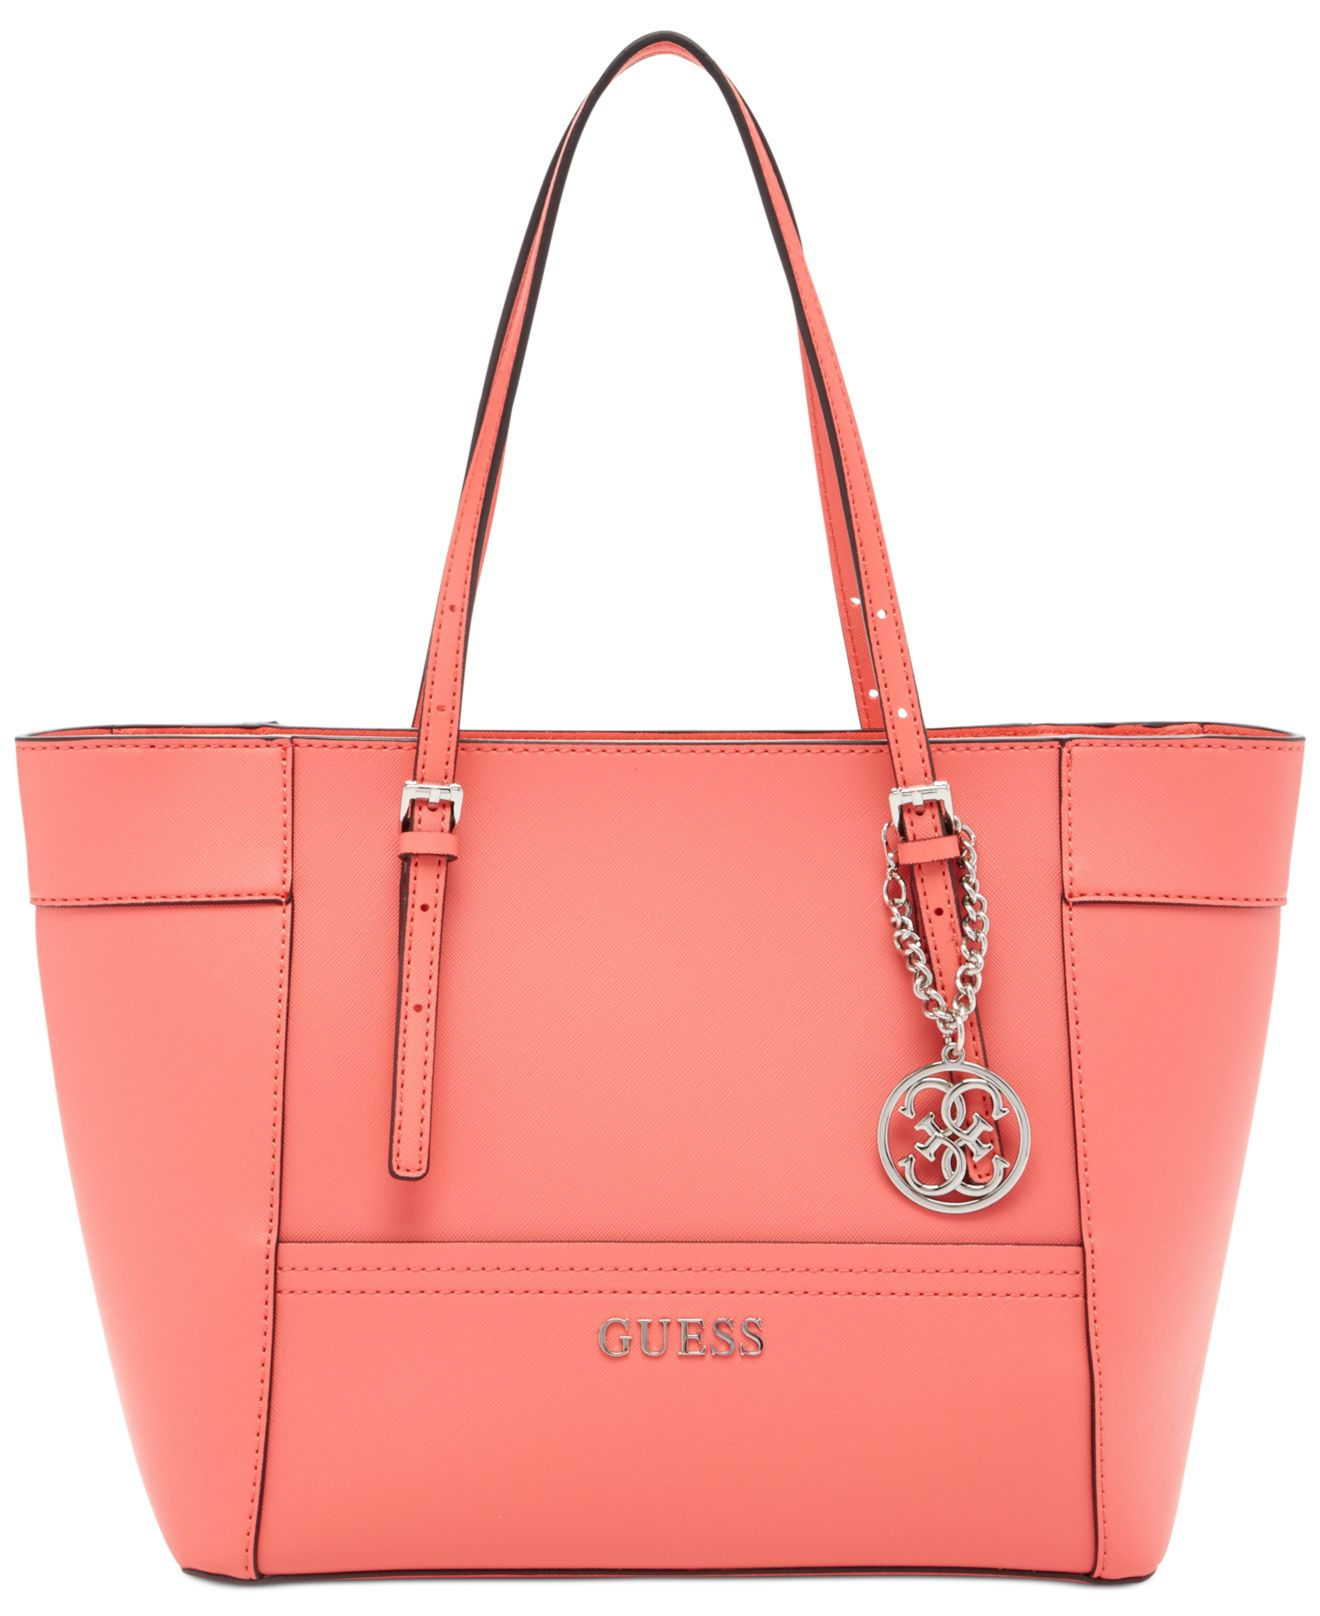 Guess Delaney Small Classic Tote in Pink